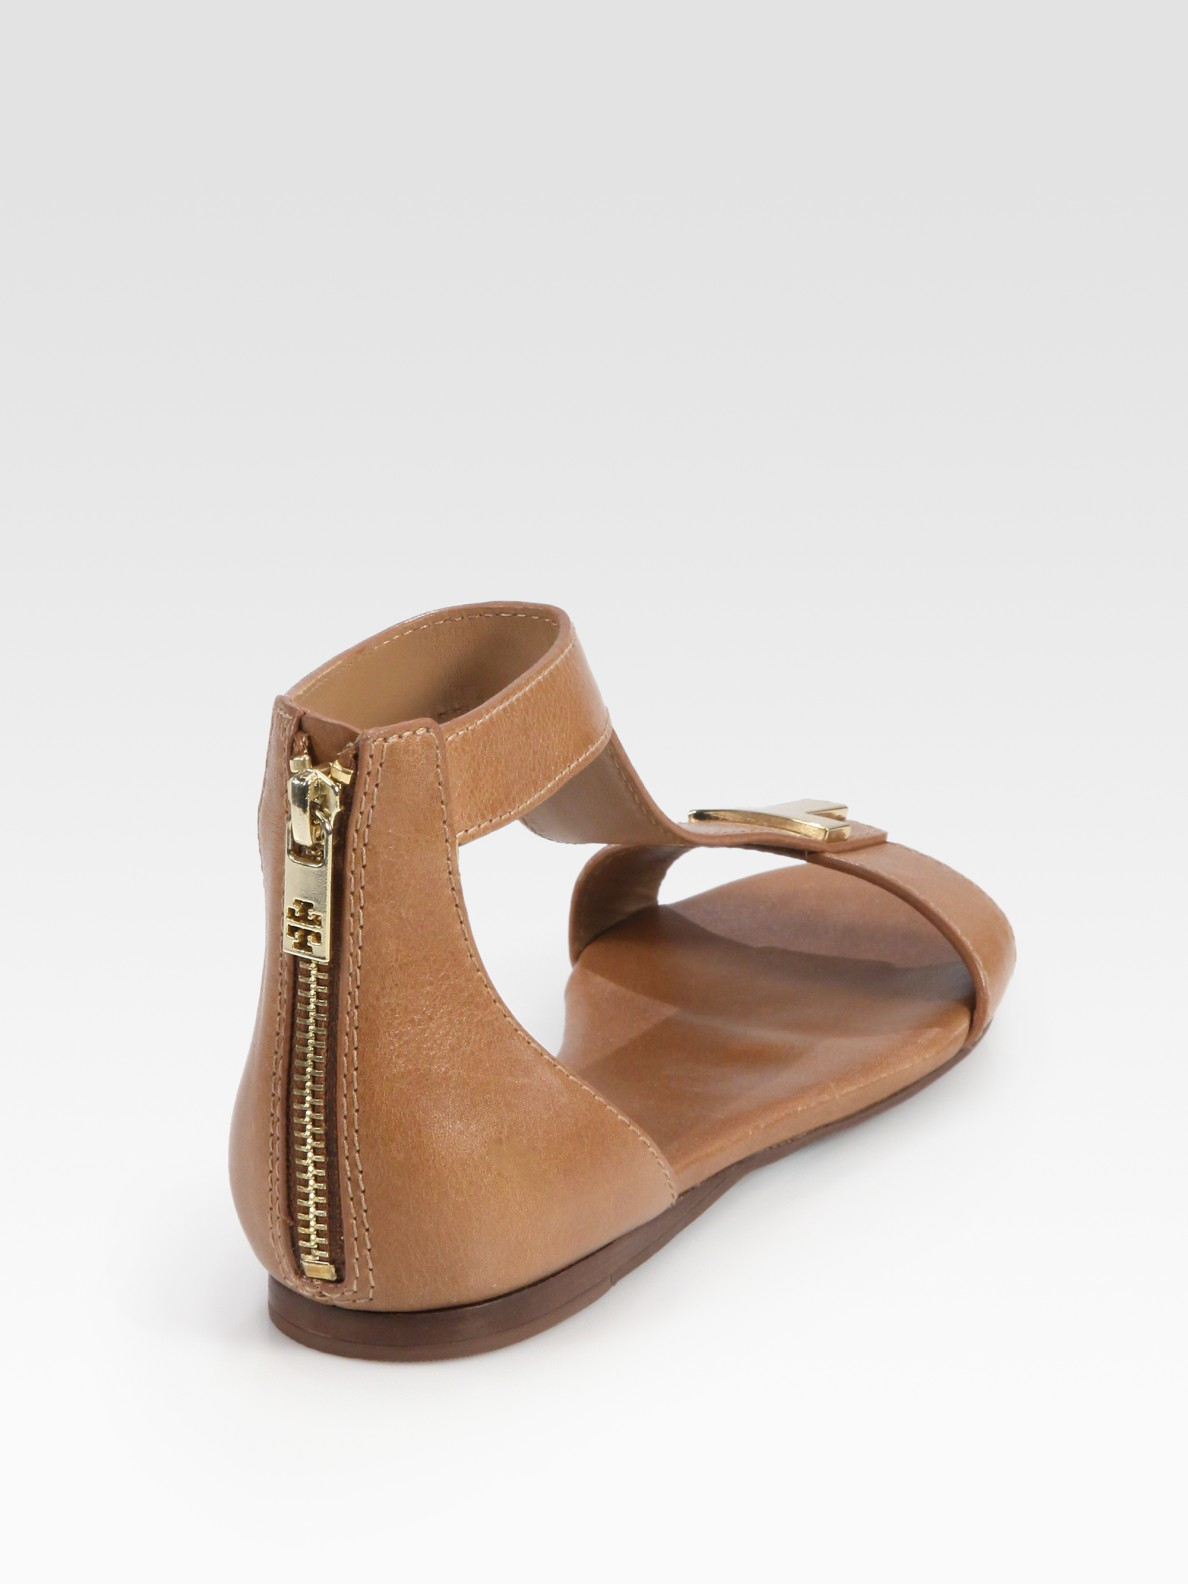 8f1915065 Lyst - Tory Burch Casey Leather T-strap Zip Sandals in Brown